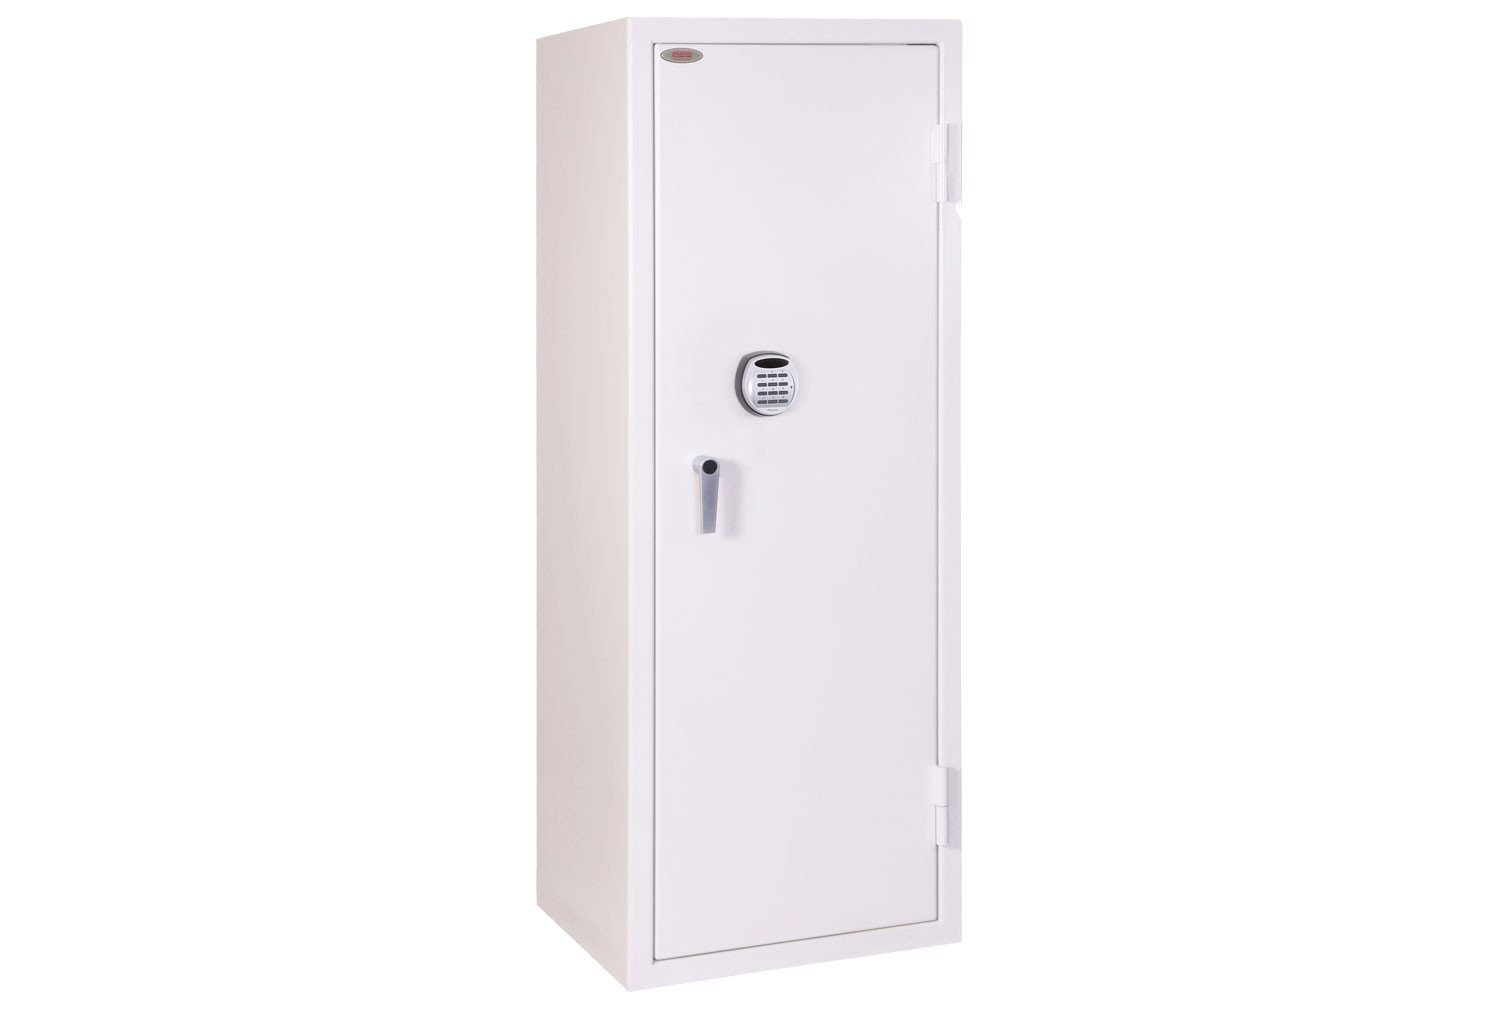 Phoenix Securstore SS1163E Security Safe With Electronic Lock (385ltrs)